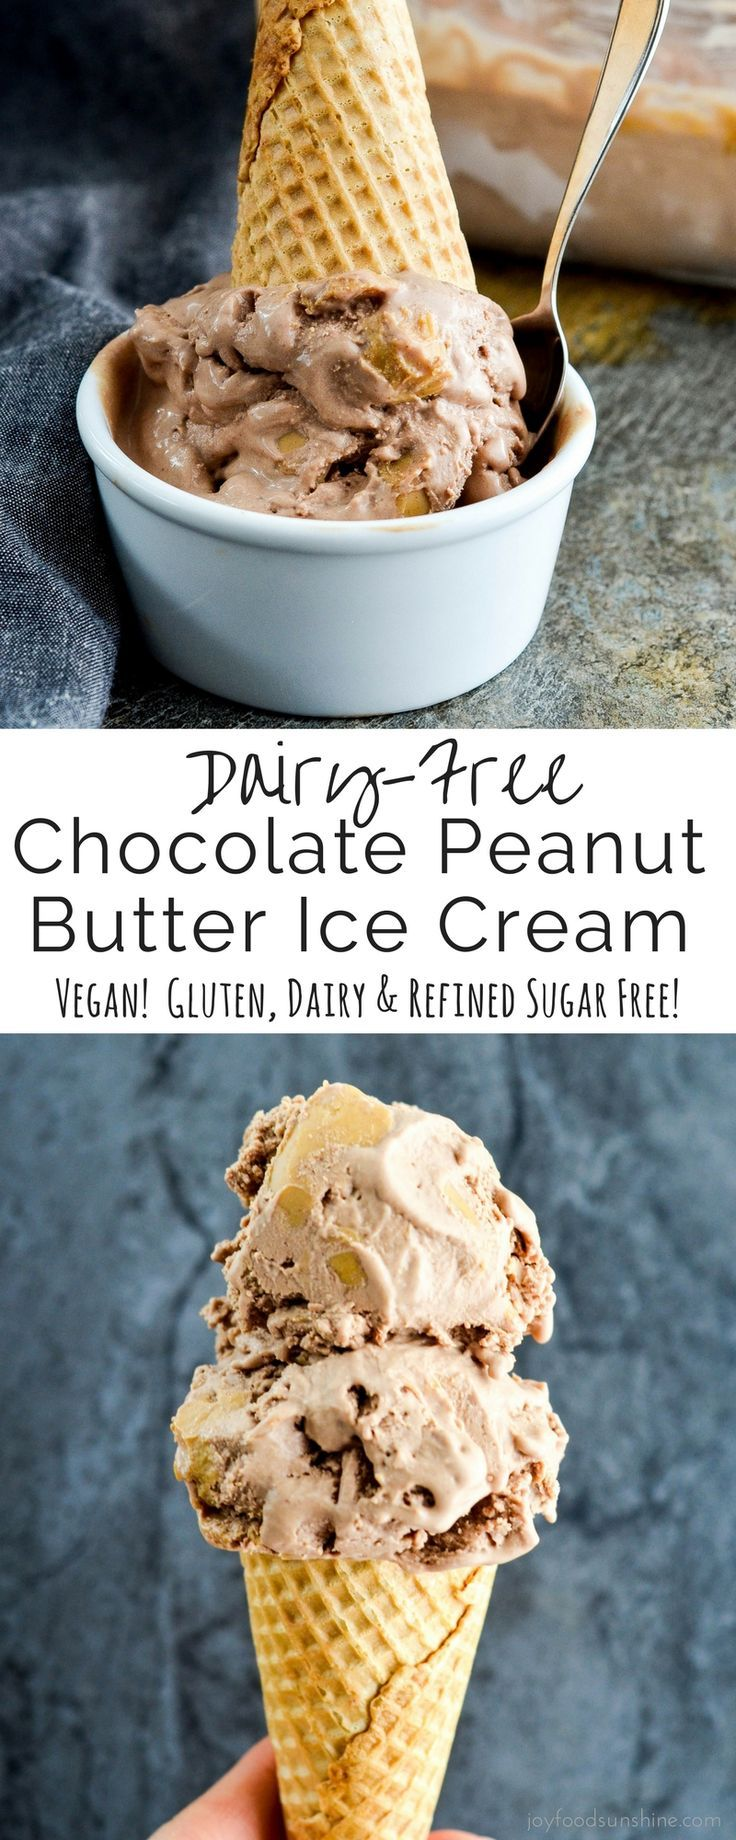 Dairy-Free Chocolate Peanut Butter Ice Cream! A healthy ice cream recipe that is ultra creamy. Made with 6 good-for-you ingredients! Dairy-free, gluten-free, refined sugar free, vegan